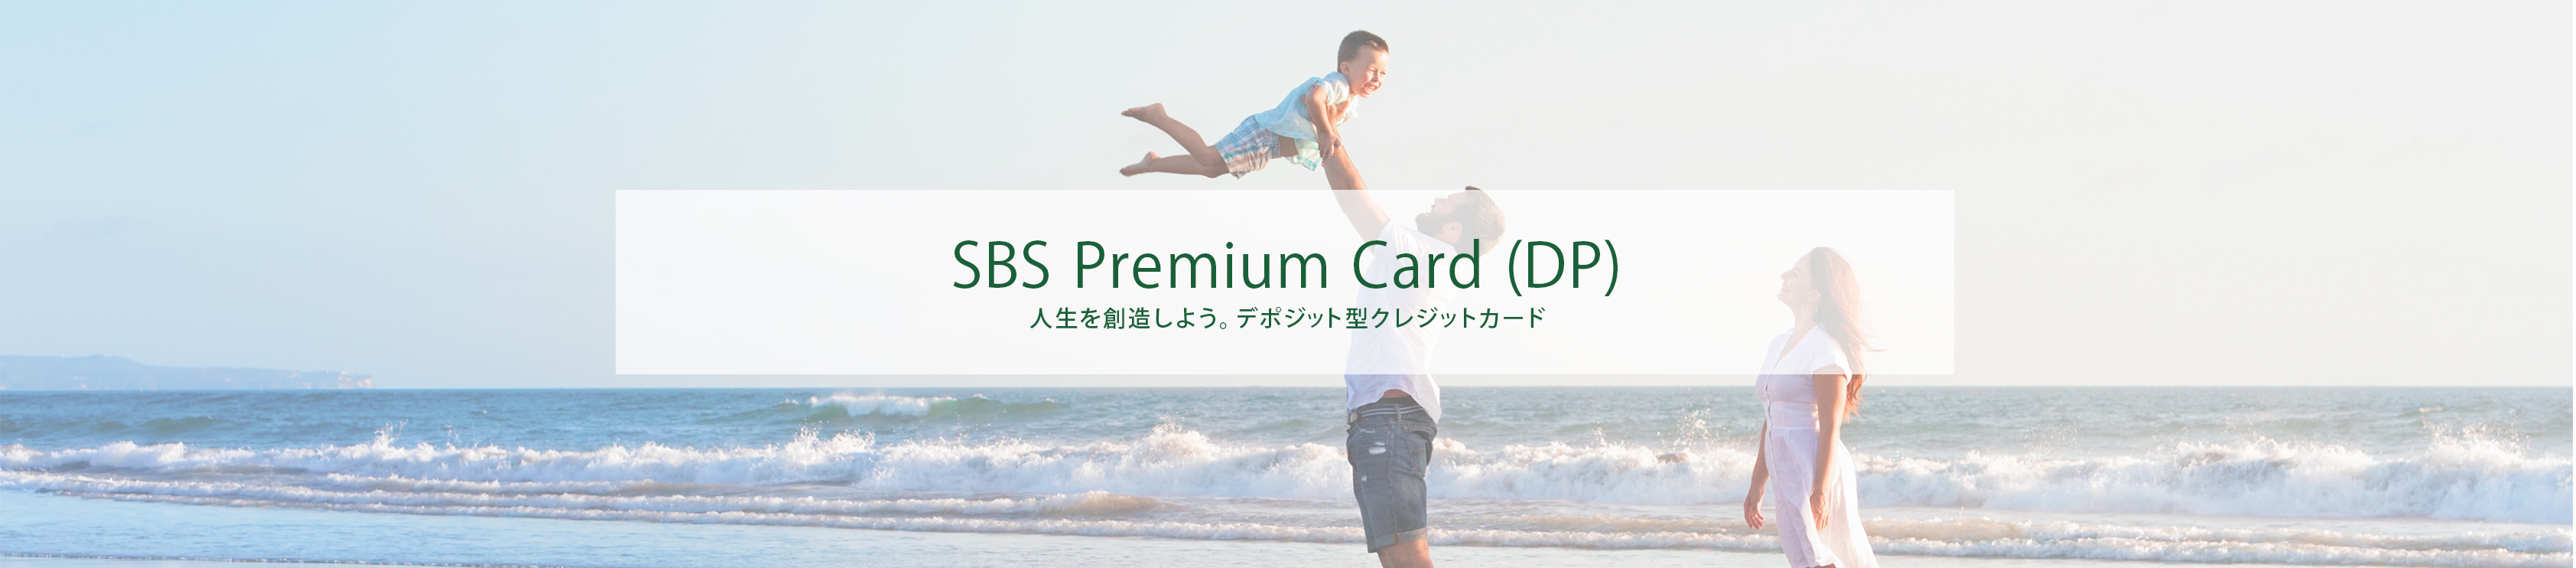 SBS Premium Card(DP)